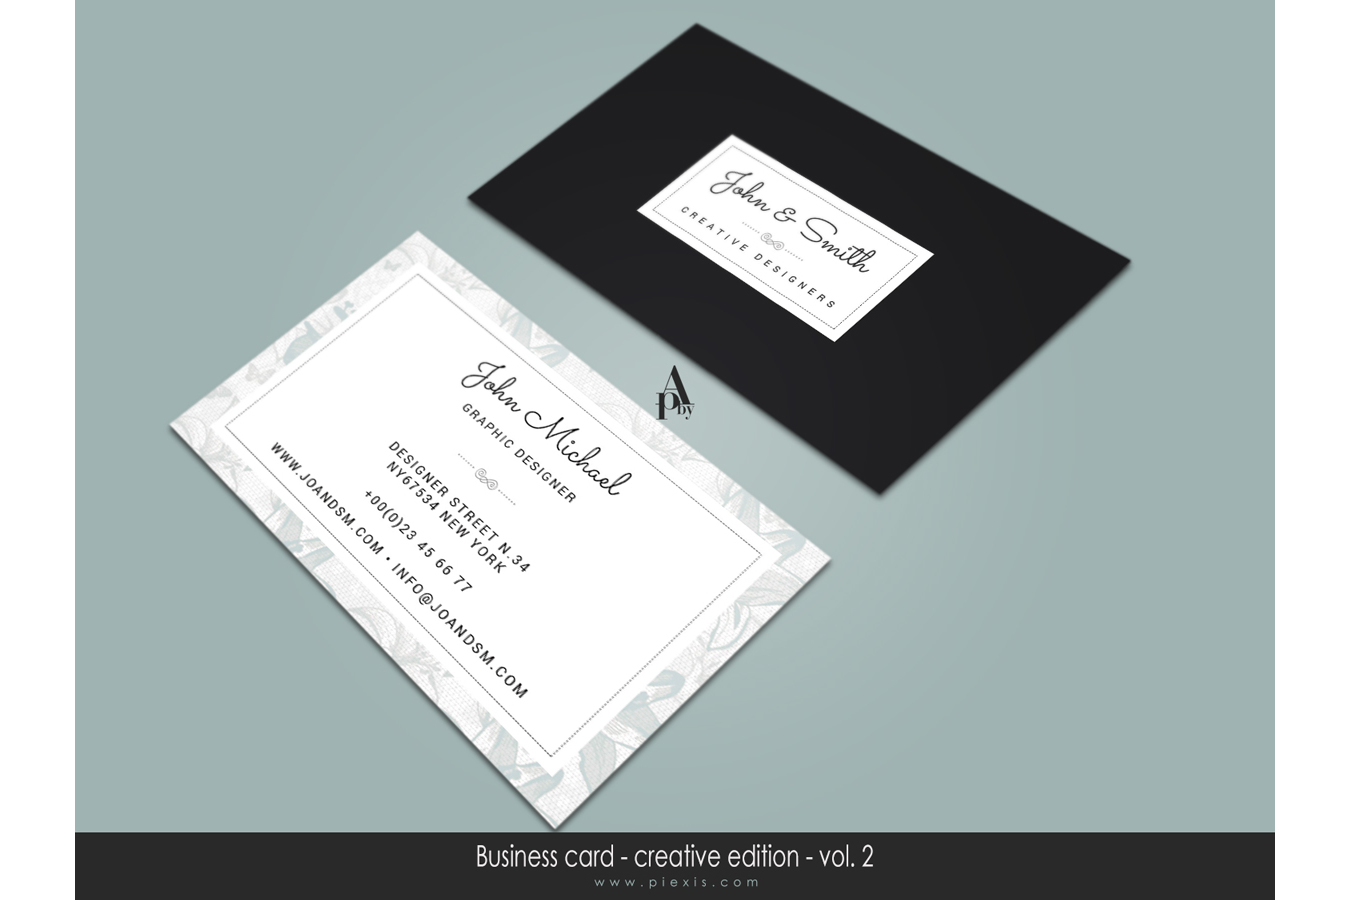 Creative Business Card Vol.2 example image 2